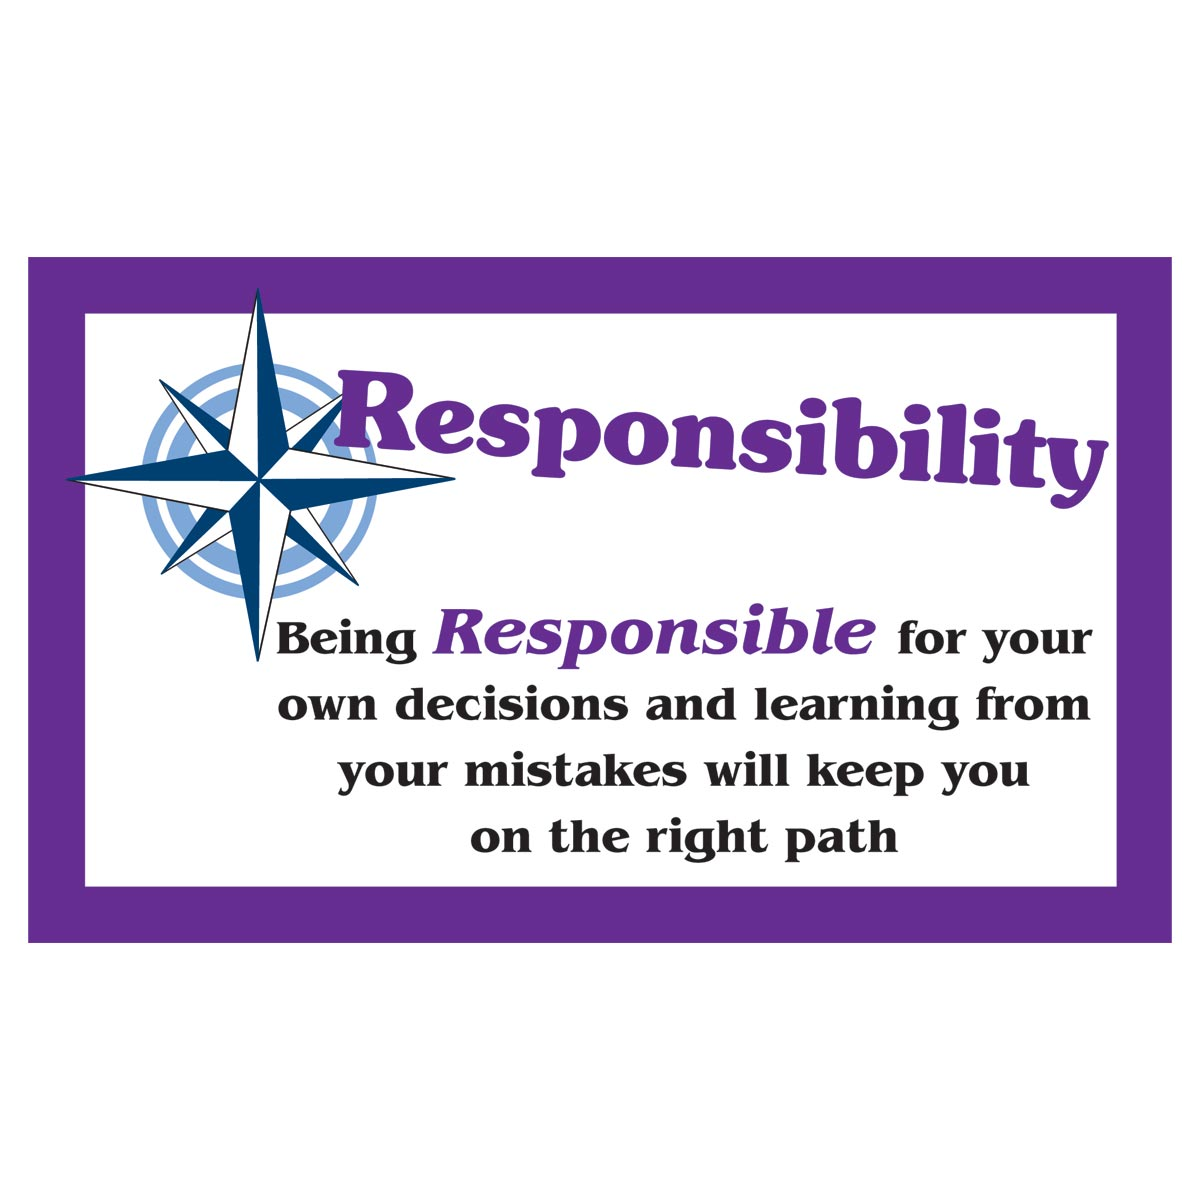 2010 - Responsibility Character